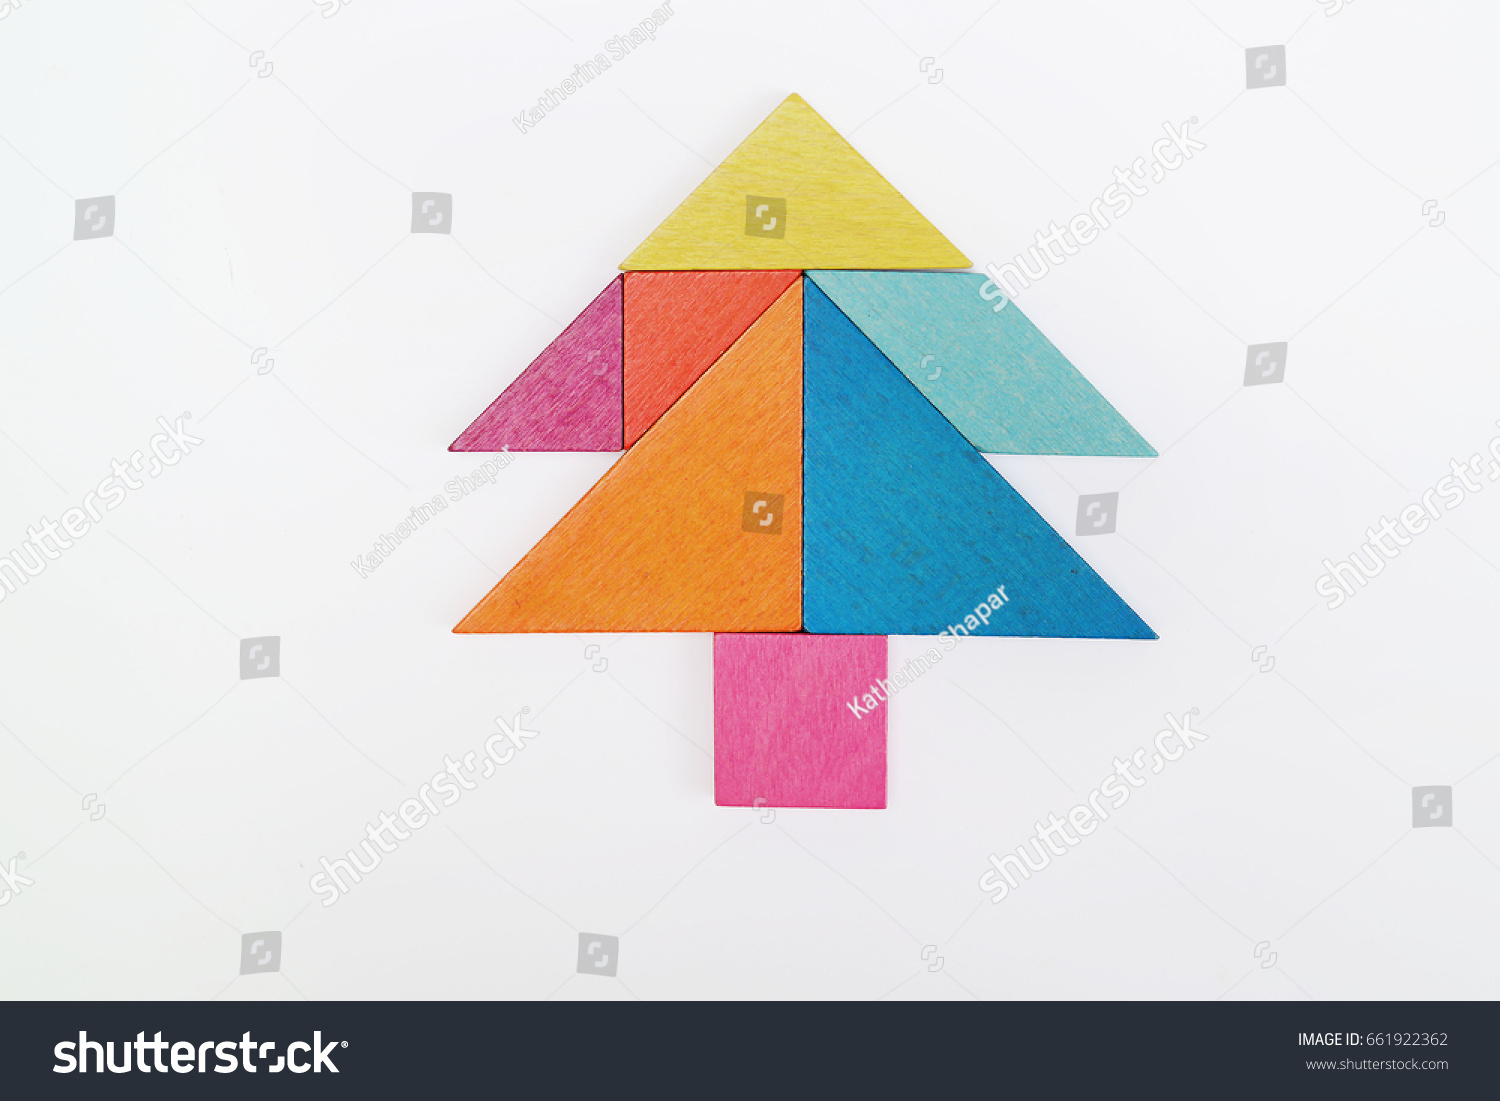 tangram fir tree